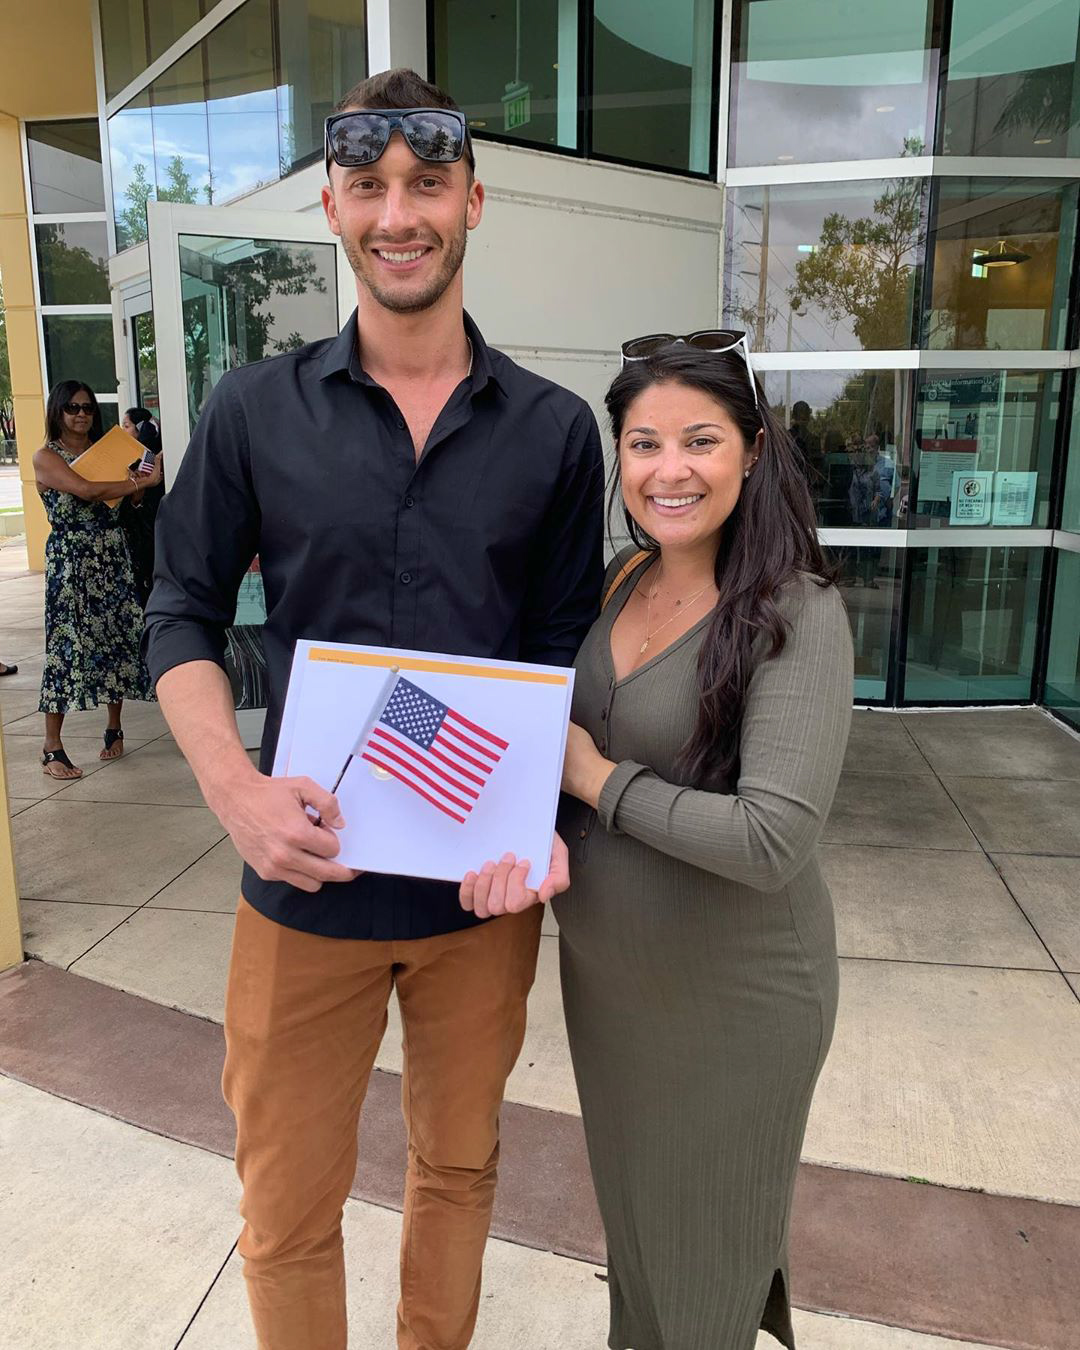 90 day fiance star loren and alexei celebrate his united states citizenship